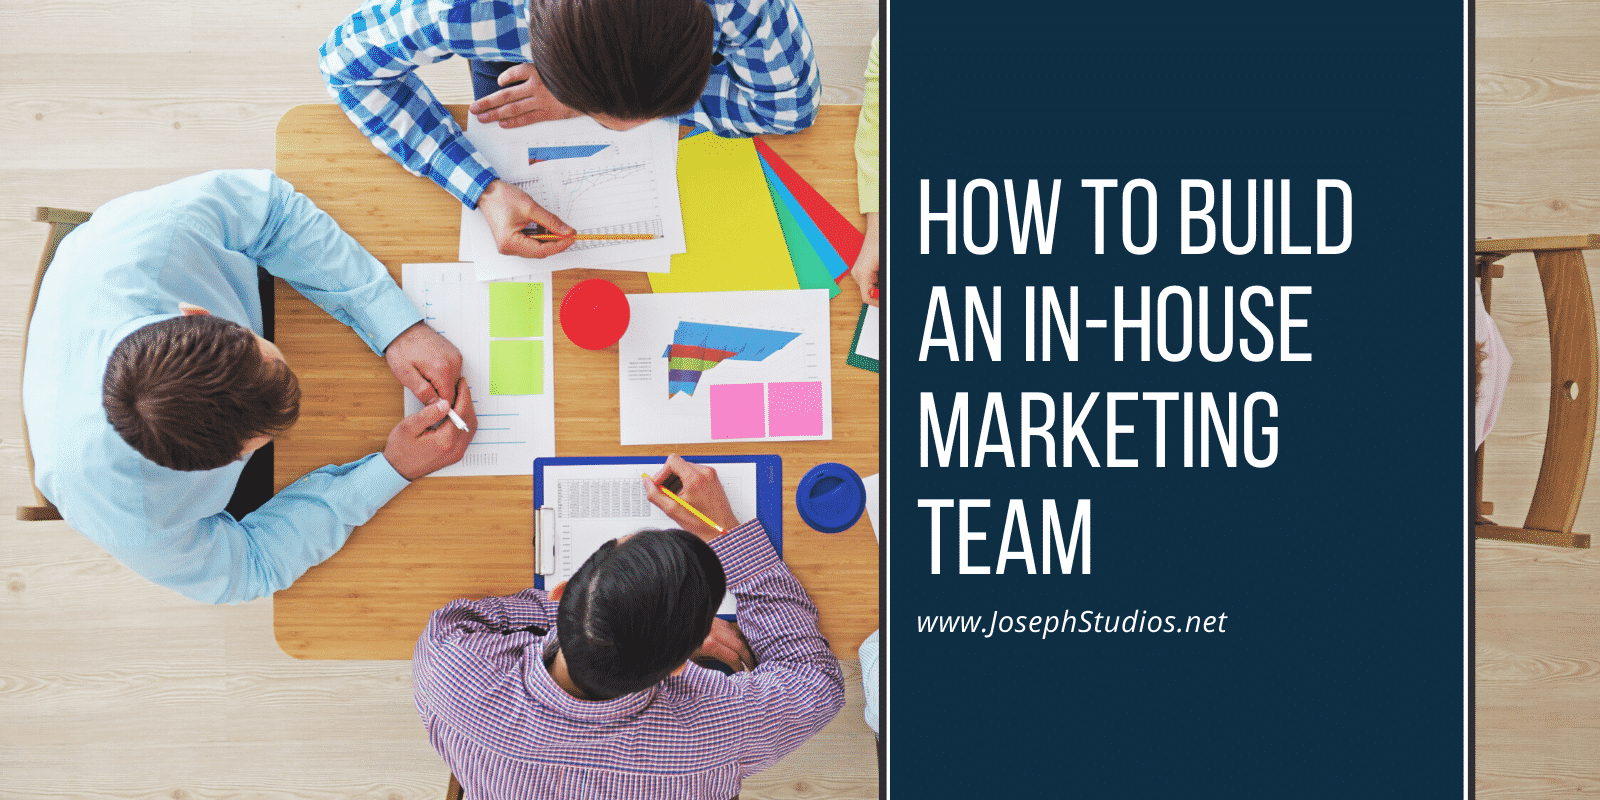 How to Build An In-House Marketing Team, How to Build An In-House Marketing Team